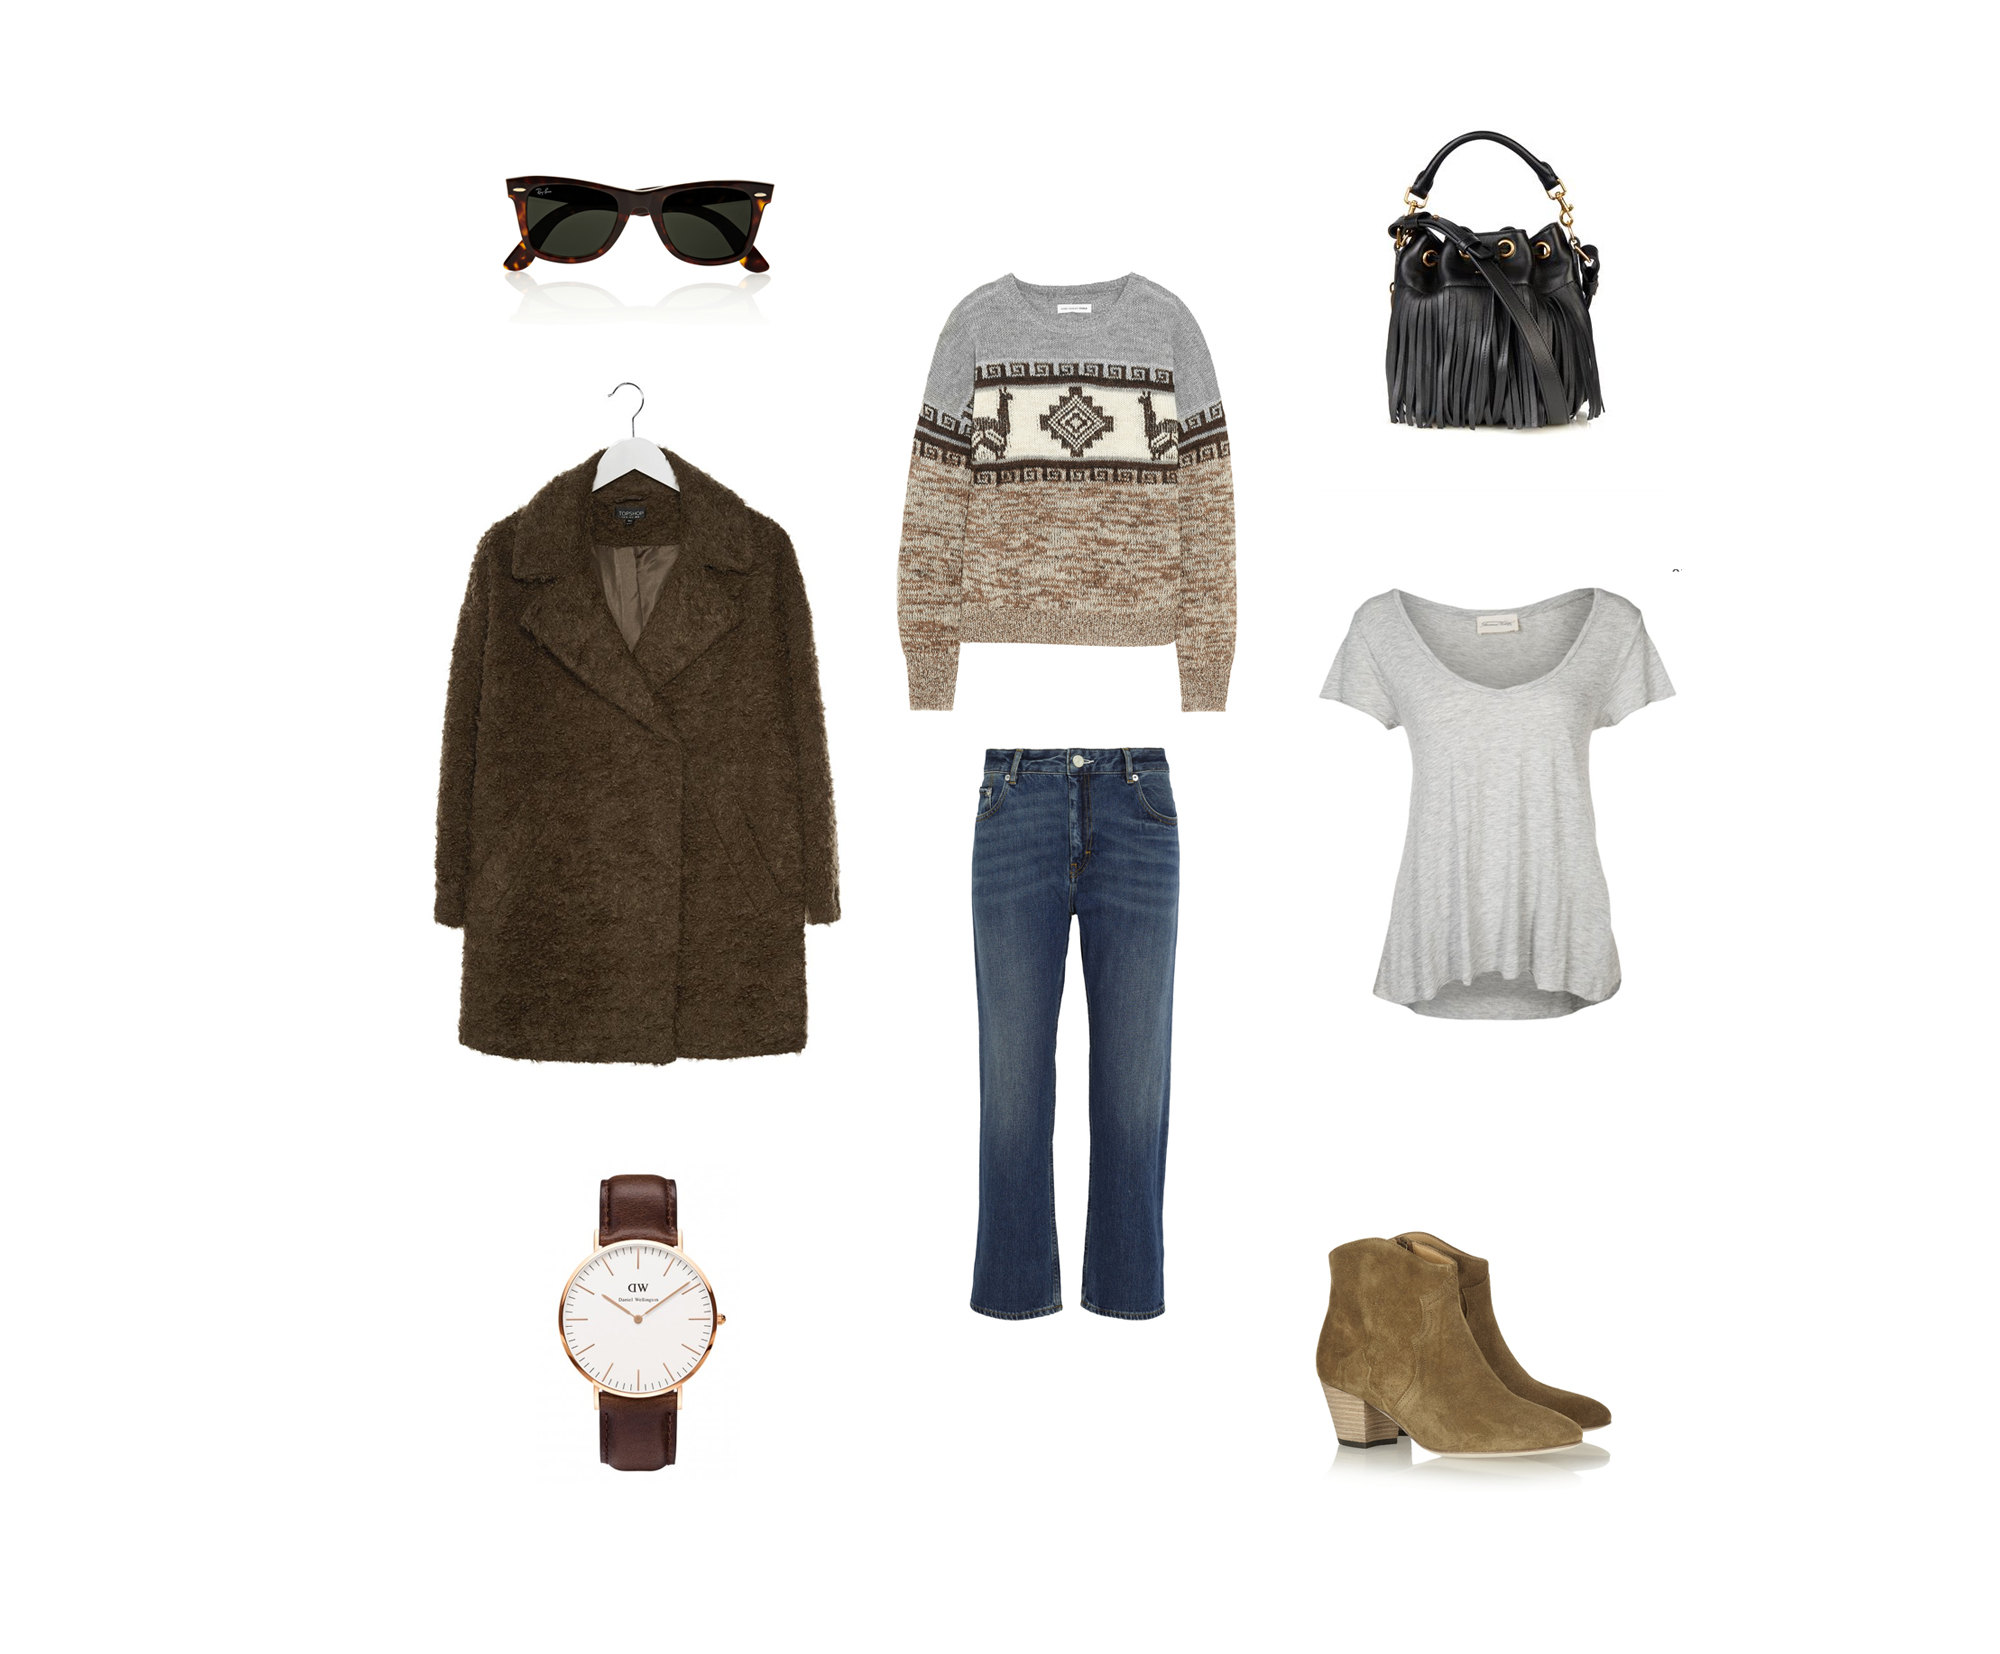 Isabel_marant_dicker_boots_acne_pop_jeans_saint_lauren_bucket_bag